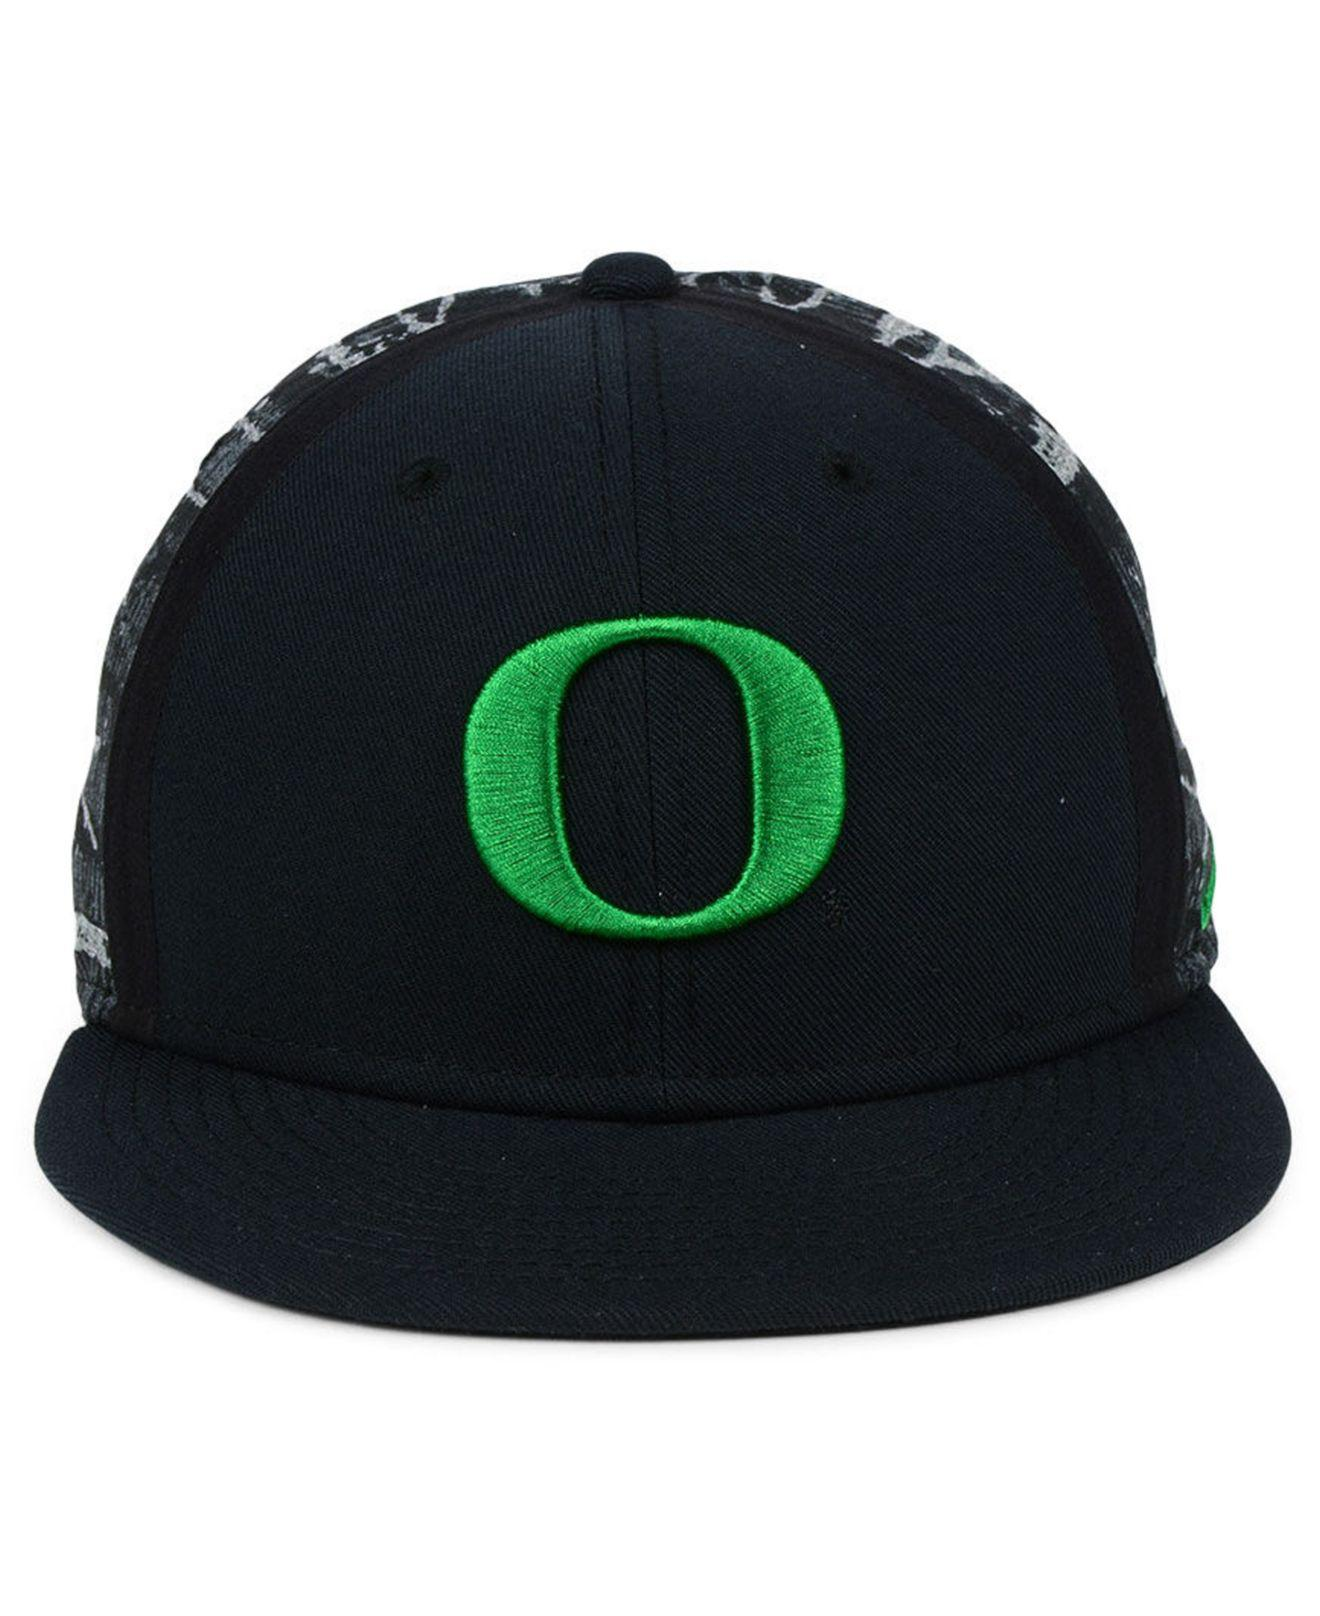 new concept 67aac 5f59b italy lyst nike oregon ducks dna true snapback cap in black for men save  32.0 f83b6